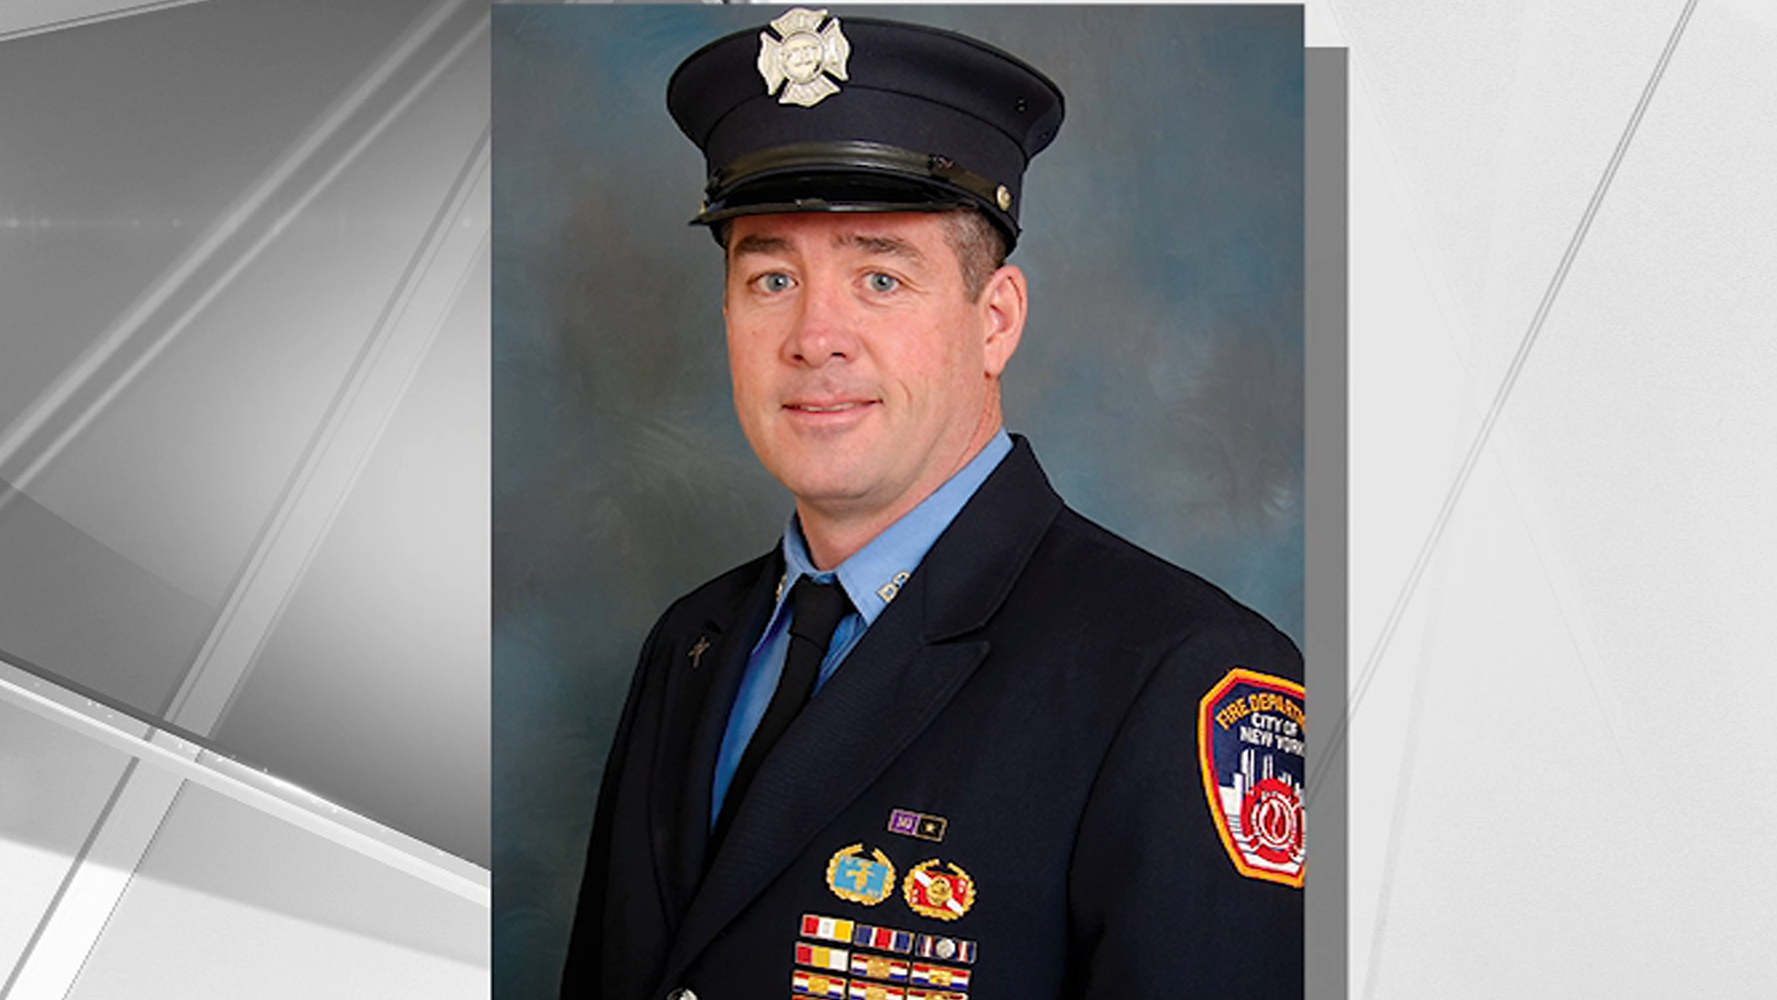 21-Year Firefighter Veteran Dies From 9/11-Related Cancer